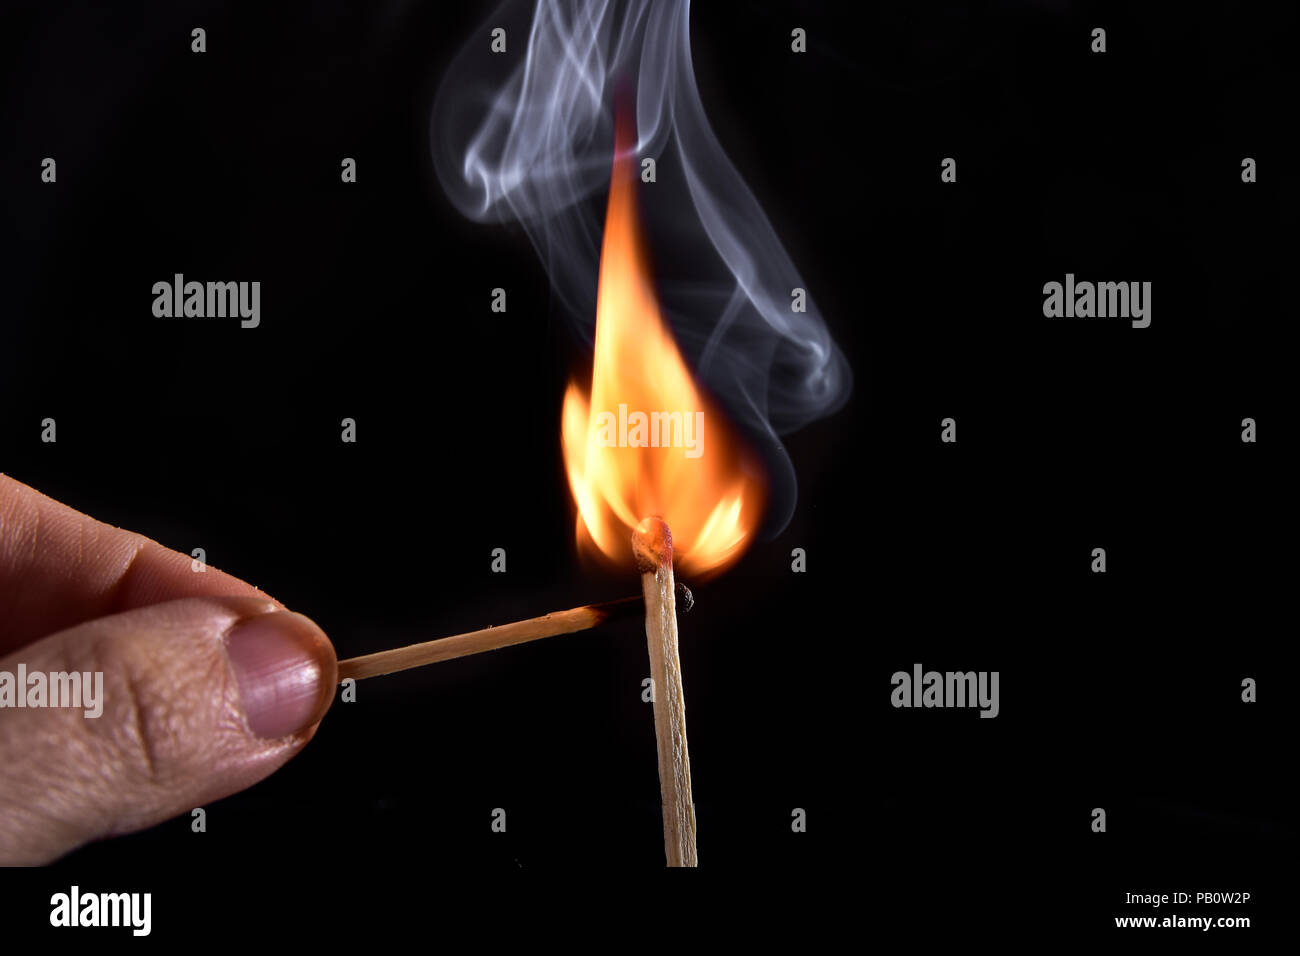 Close up of a match on a black background. I lit a matchstick on a dark background to see all the details of the sequence of ignition. - Stock Image